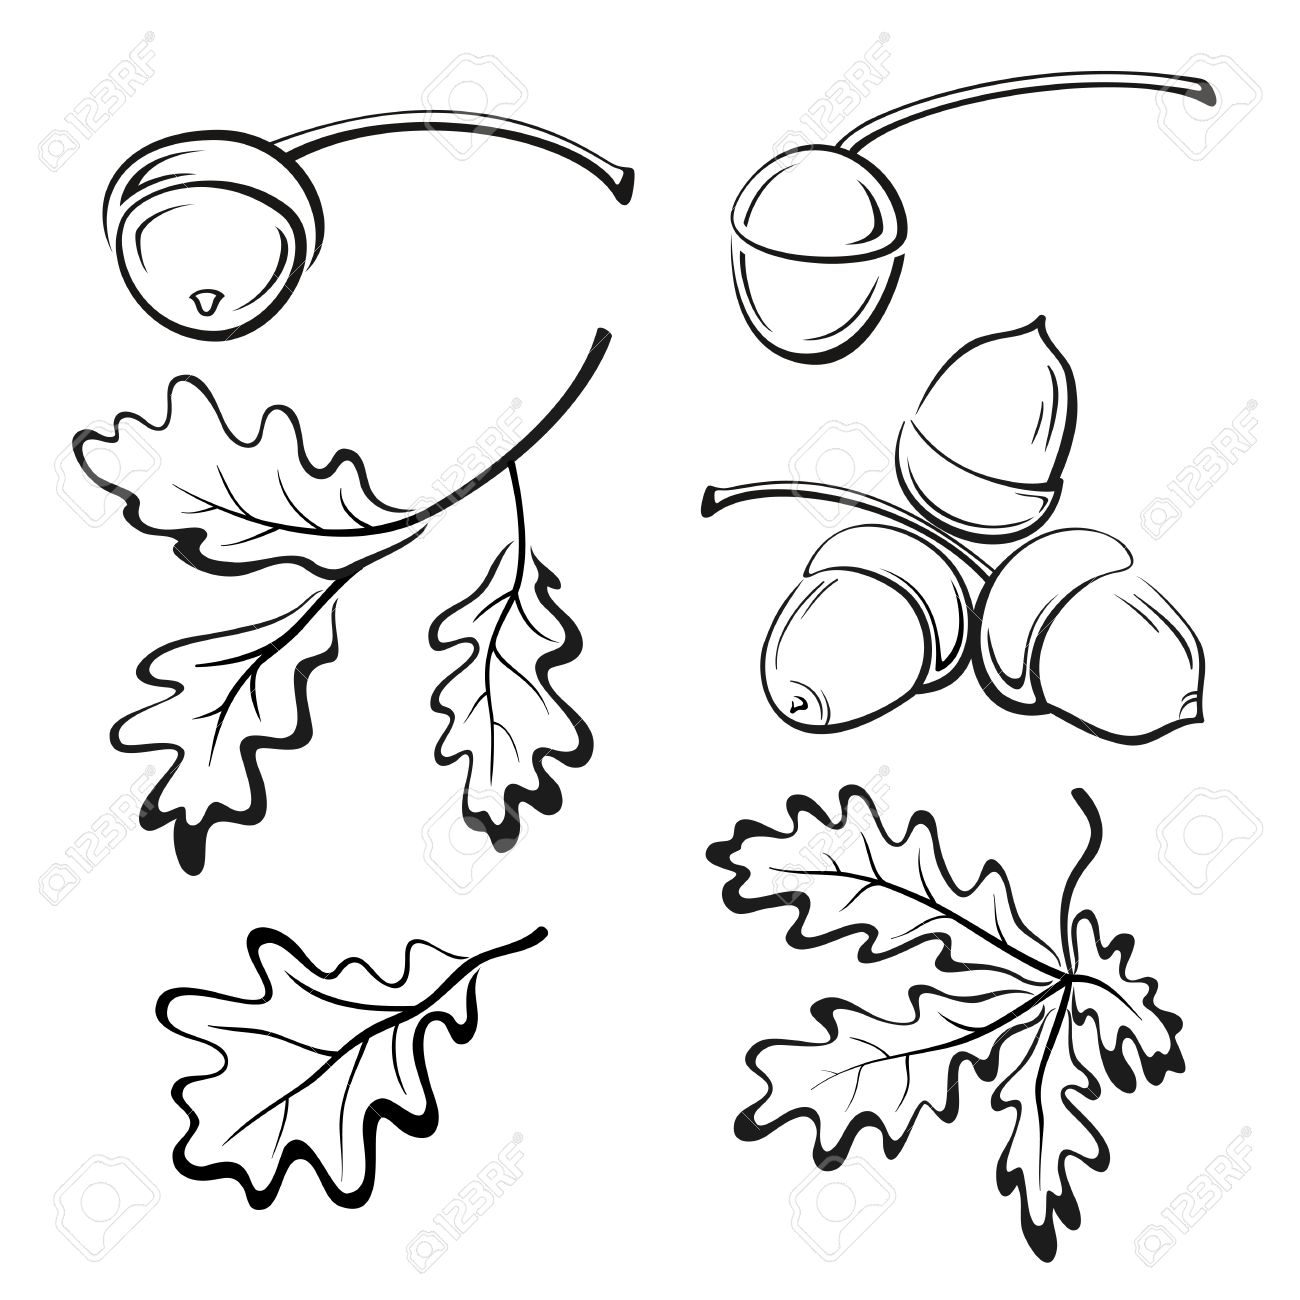 Uncategorized Drawings Of Acorns set oak branches with leaves and acorns black contour pictograms isolated on white background